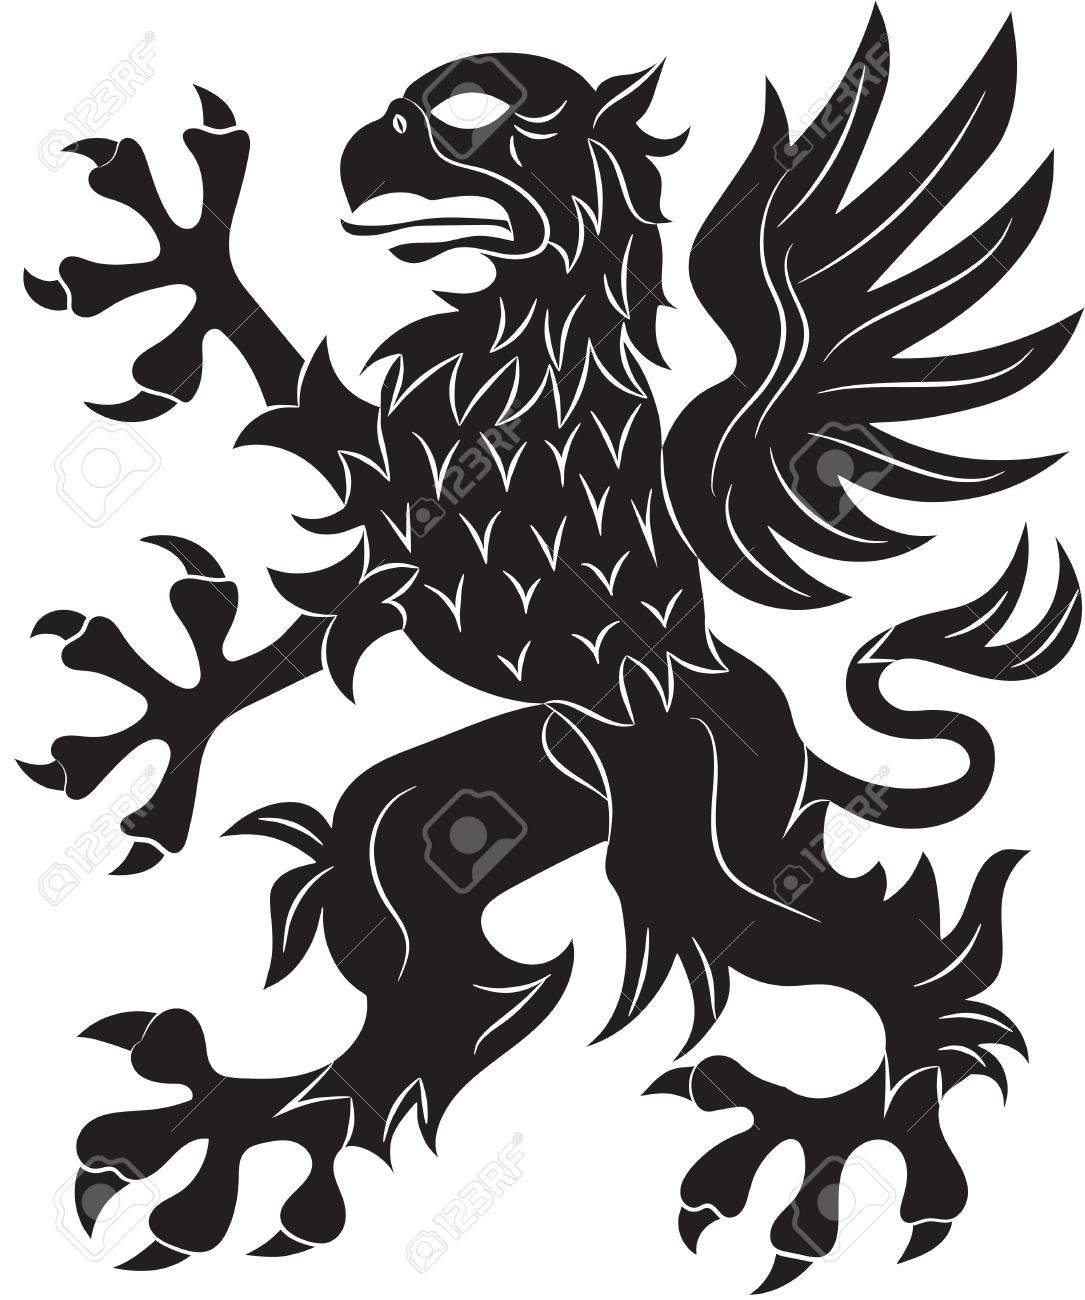 Gryphon Silhouette